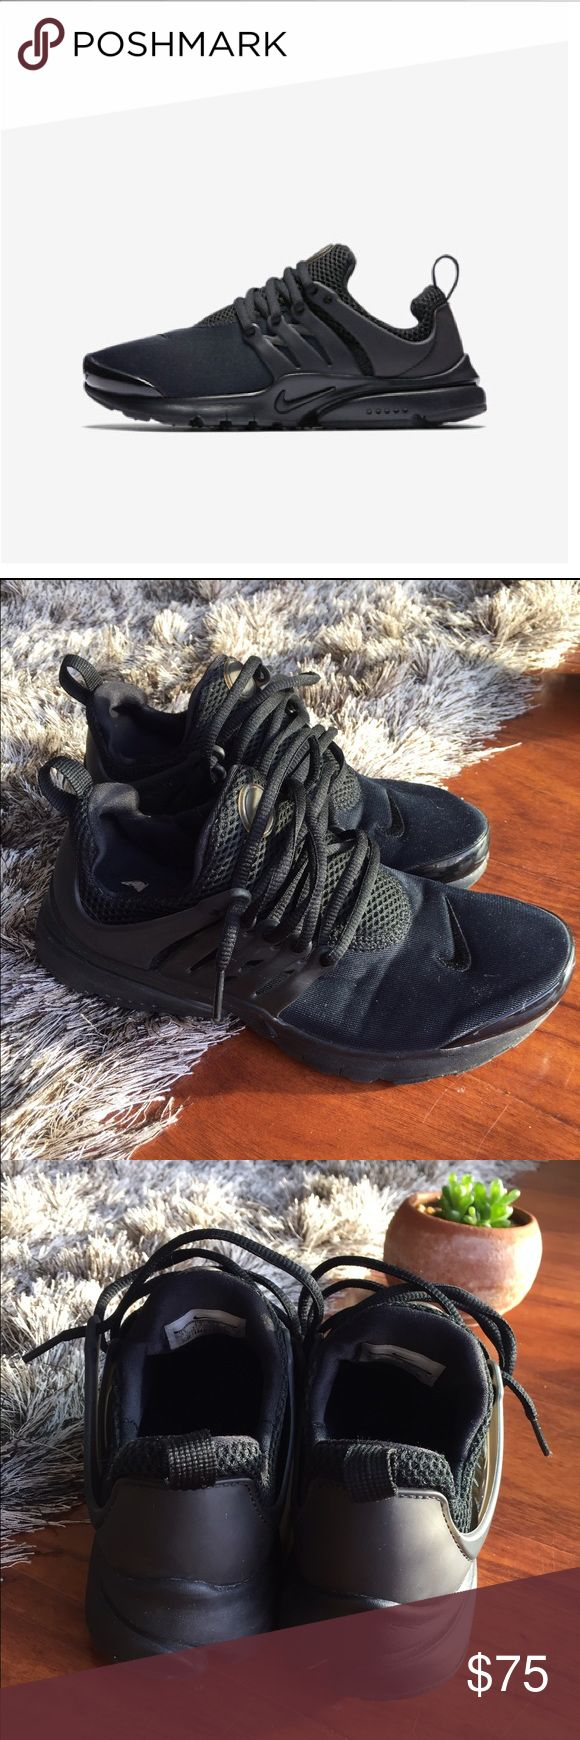 new arrival 025c7 cfe6f ... get nike presto black on black big kids size 5.5 how to get first copy  ff28f